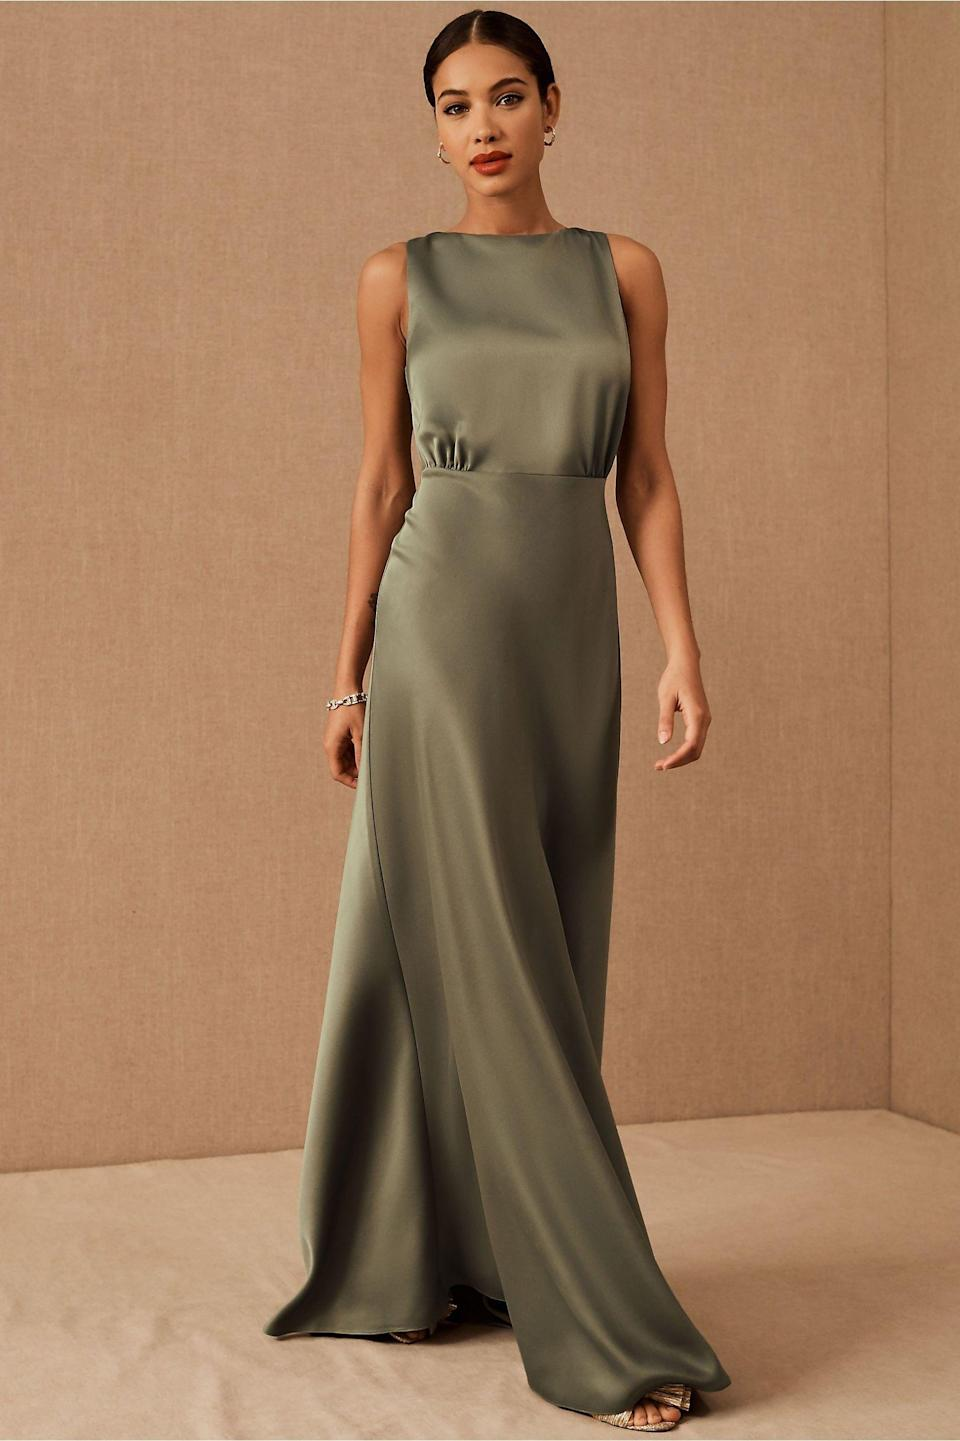 """This high-neck floor-length silk dress is—in a word—timeless. $220, BHLDN. <a href=""""https://www.bhldn.com/products/beckett-satin-charmeuse-dress-sedona-sunset?color=Moss&size_type=plus&via=Z2lkOi8vdXJibi9Xb3JrYXJlYTo6Q2F0YWxvZzo6Q2F0ZWdvcnkvQzlCRDc3ODg"""" rel=""""nofollow noopener"""" target=""""_blank"""" data-ylk=""""slk:Get it now!"""" class=""""link rapid-noclick-resp"""">Get it now!</a>"""